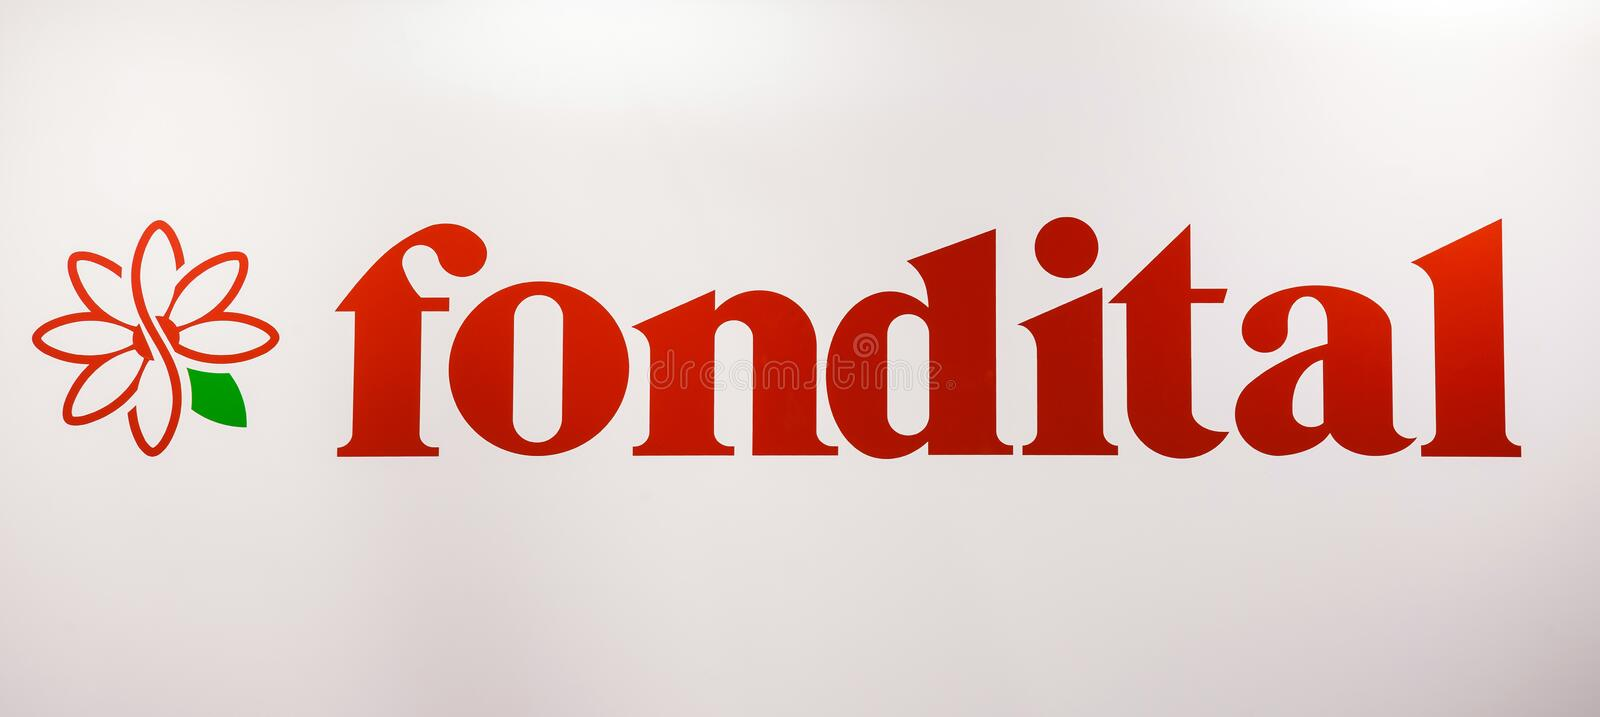 Fondital company logo. Sticker letters on the white wall. Moscow, Russia - February, 2016: Fondital company logo. Sticker letters on the white wall. Company is royalty free stock photo